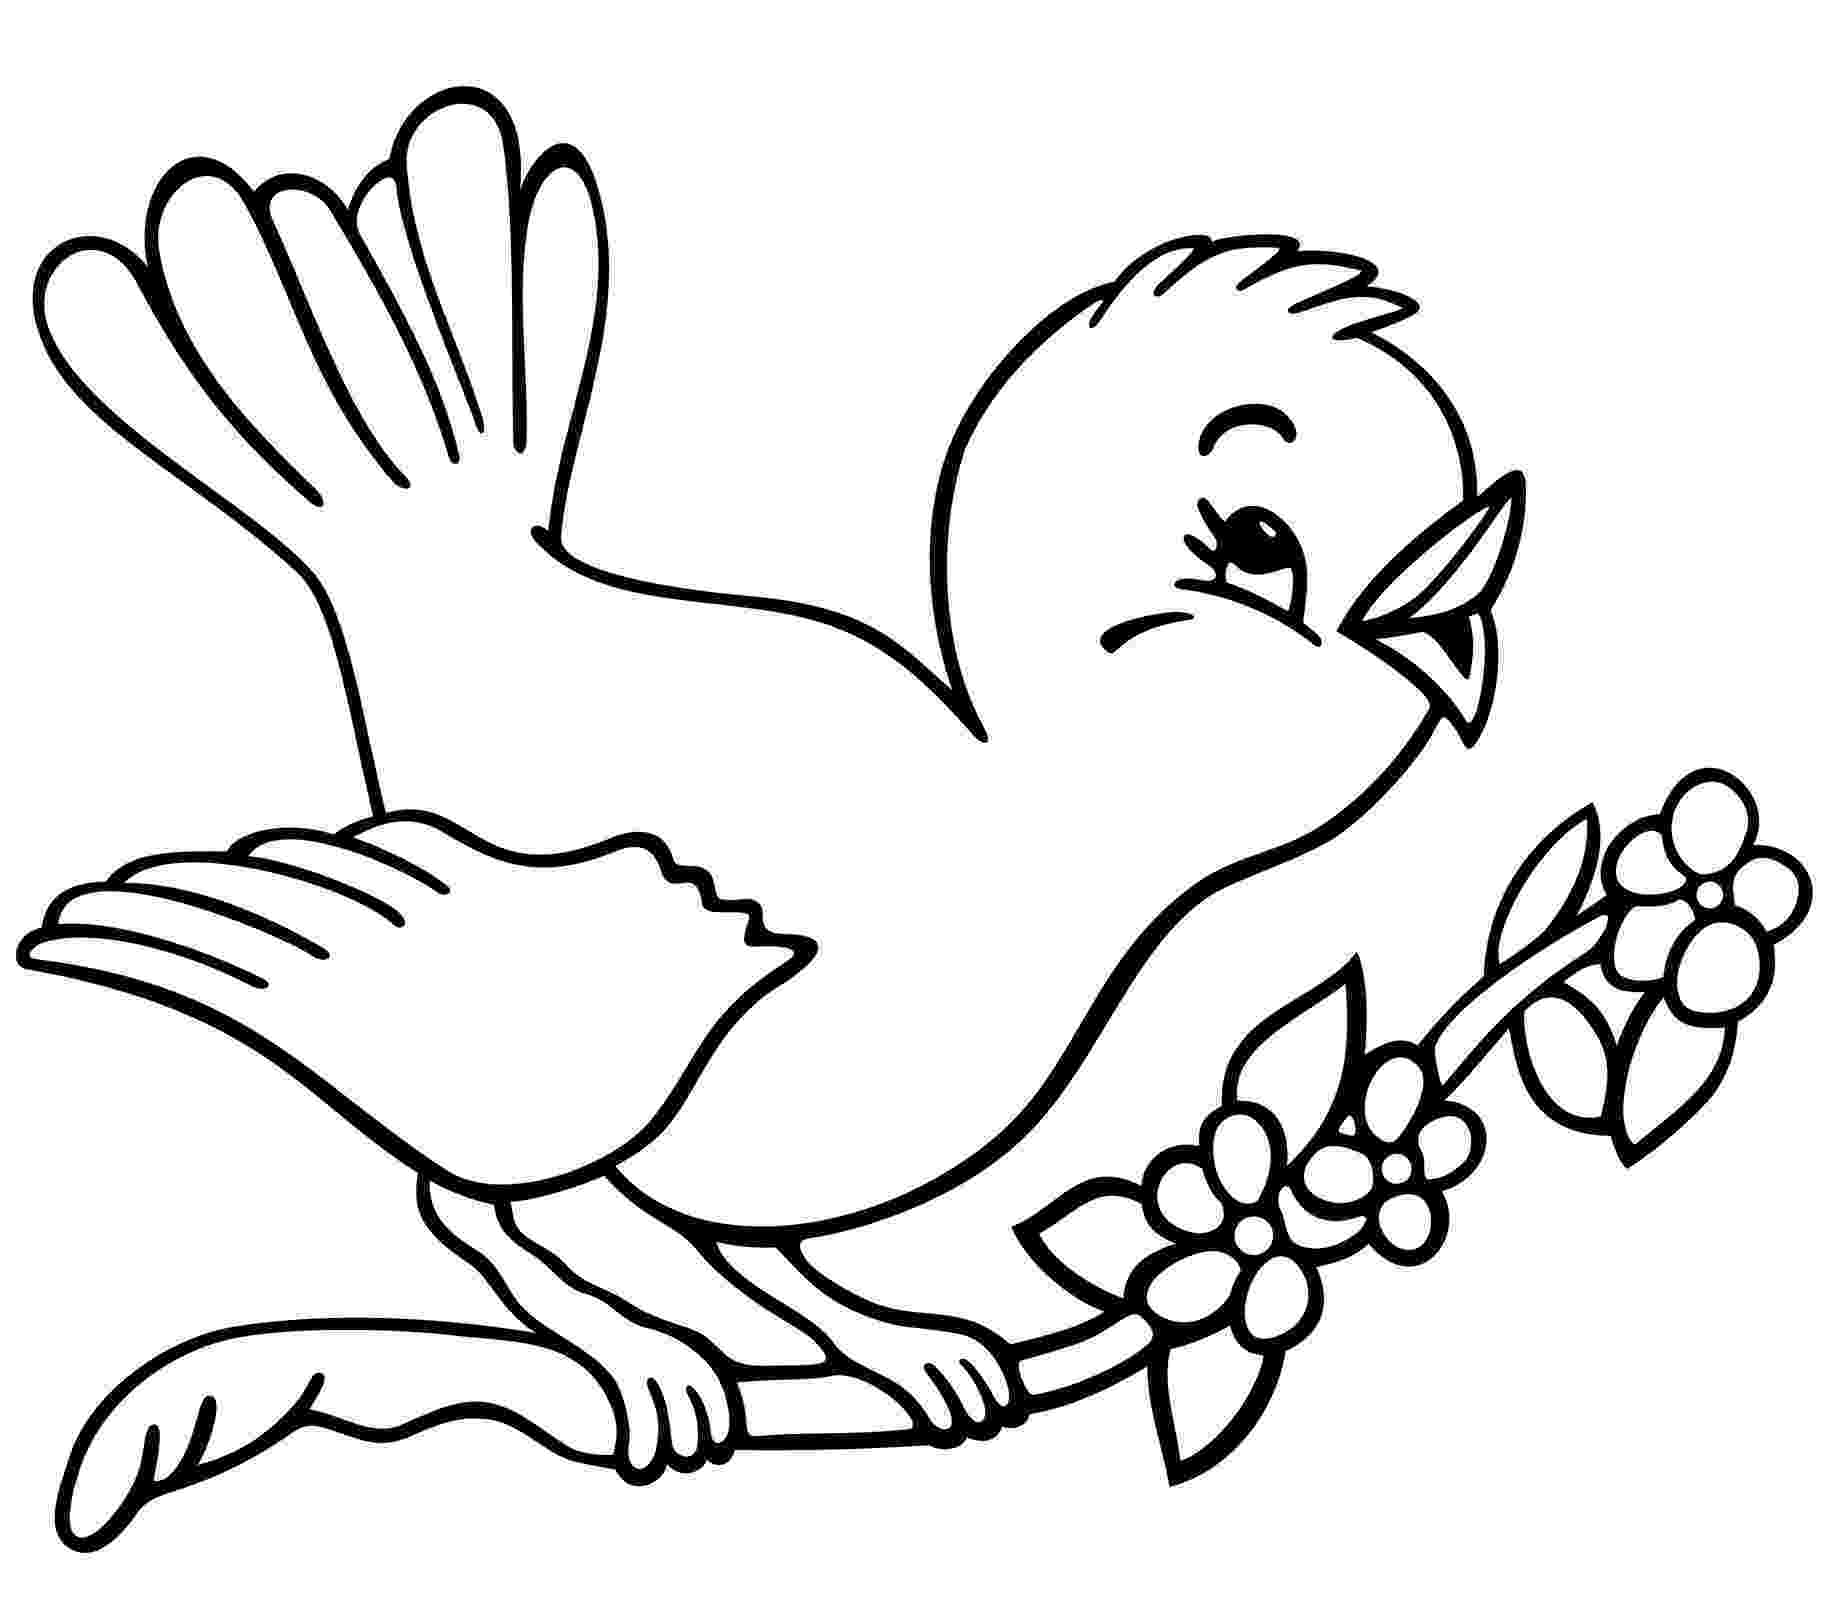 images of birds for colouring bird group coloring pages hellokidscom birds for images of colouring